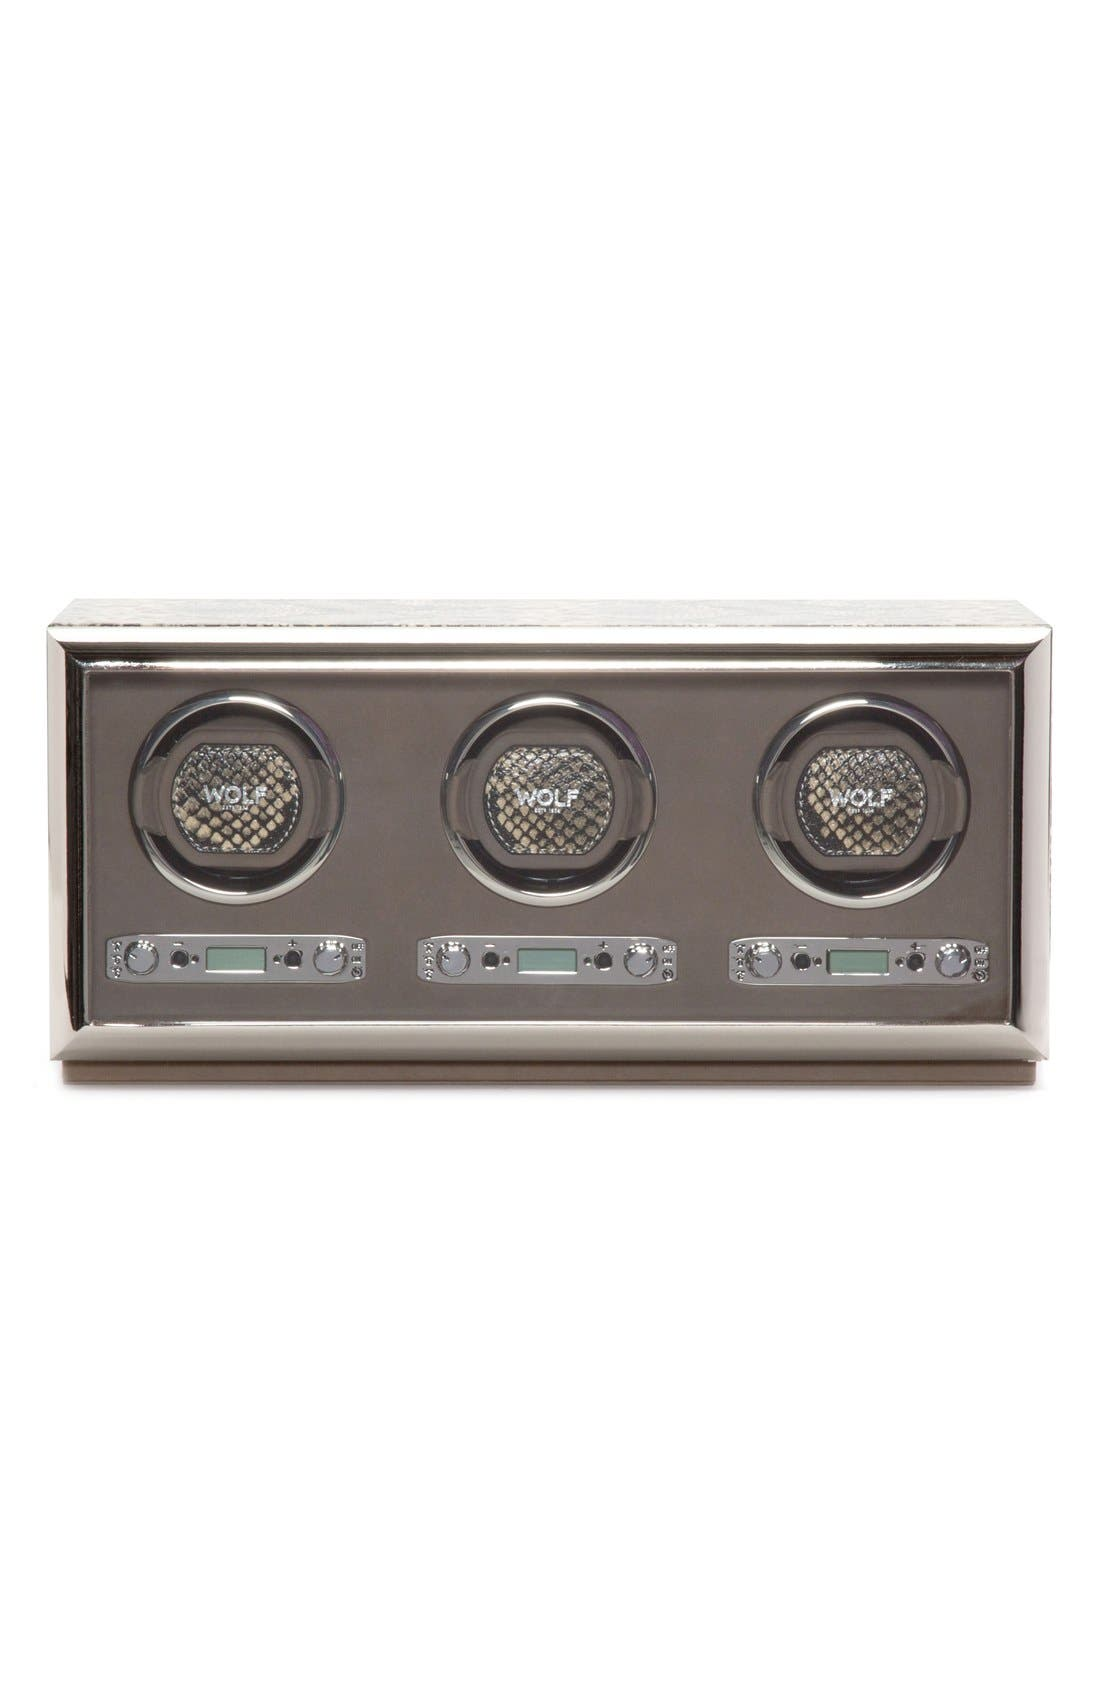 Alternate Image 1 Selected - Wolf Exotic Triple Watch Winder